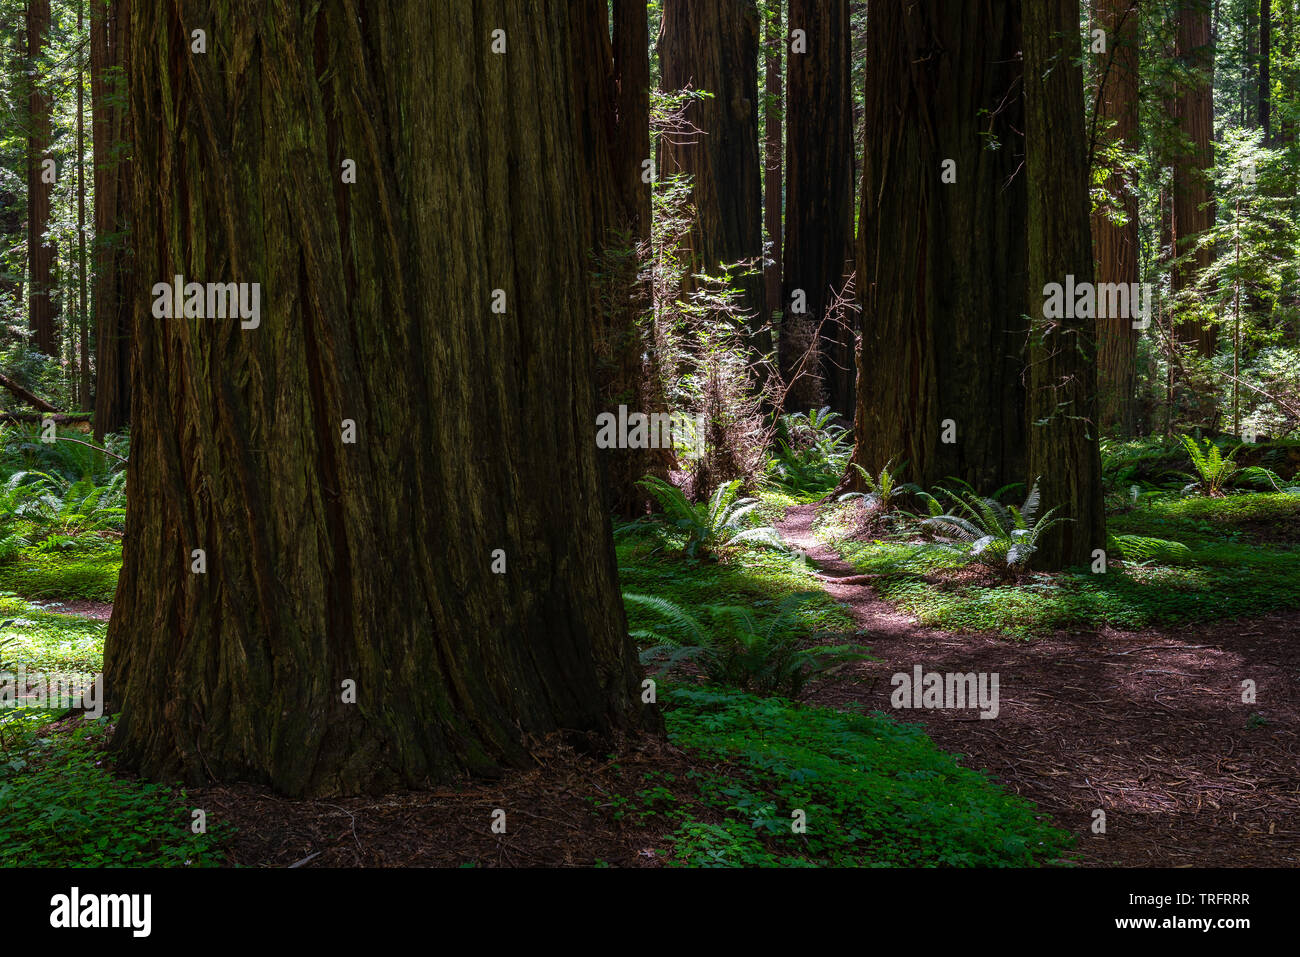 Founder's Grove in Humboldt Redwoods State Park, California, USA - Stock Image